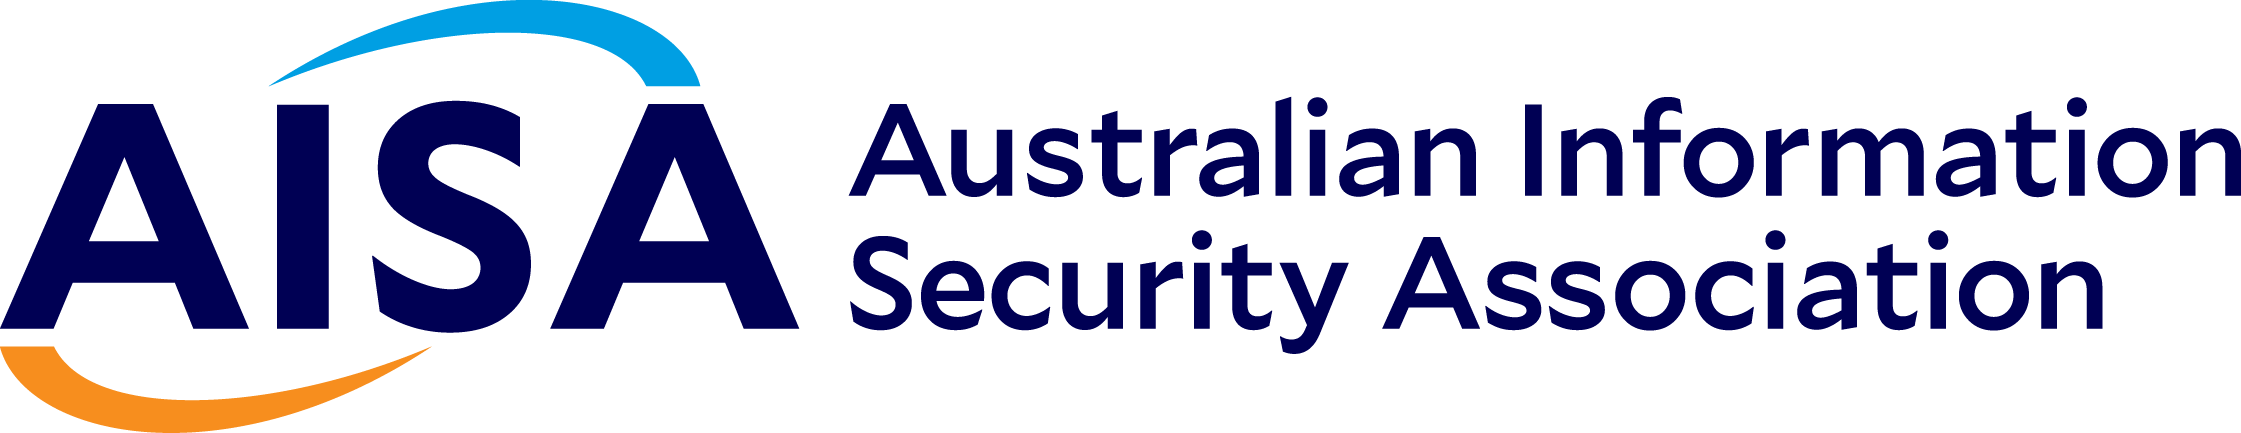 AISA (Australian Information Security Association) のロゴ